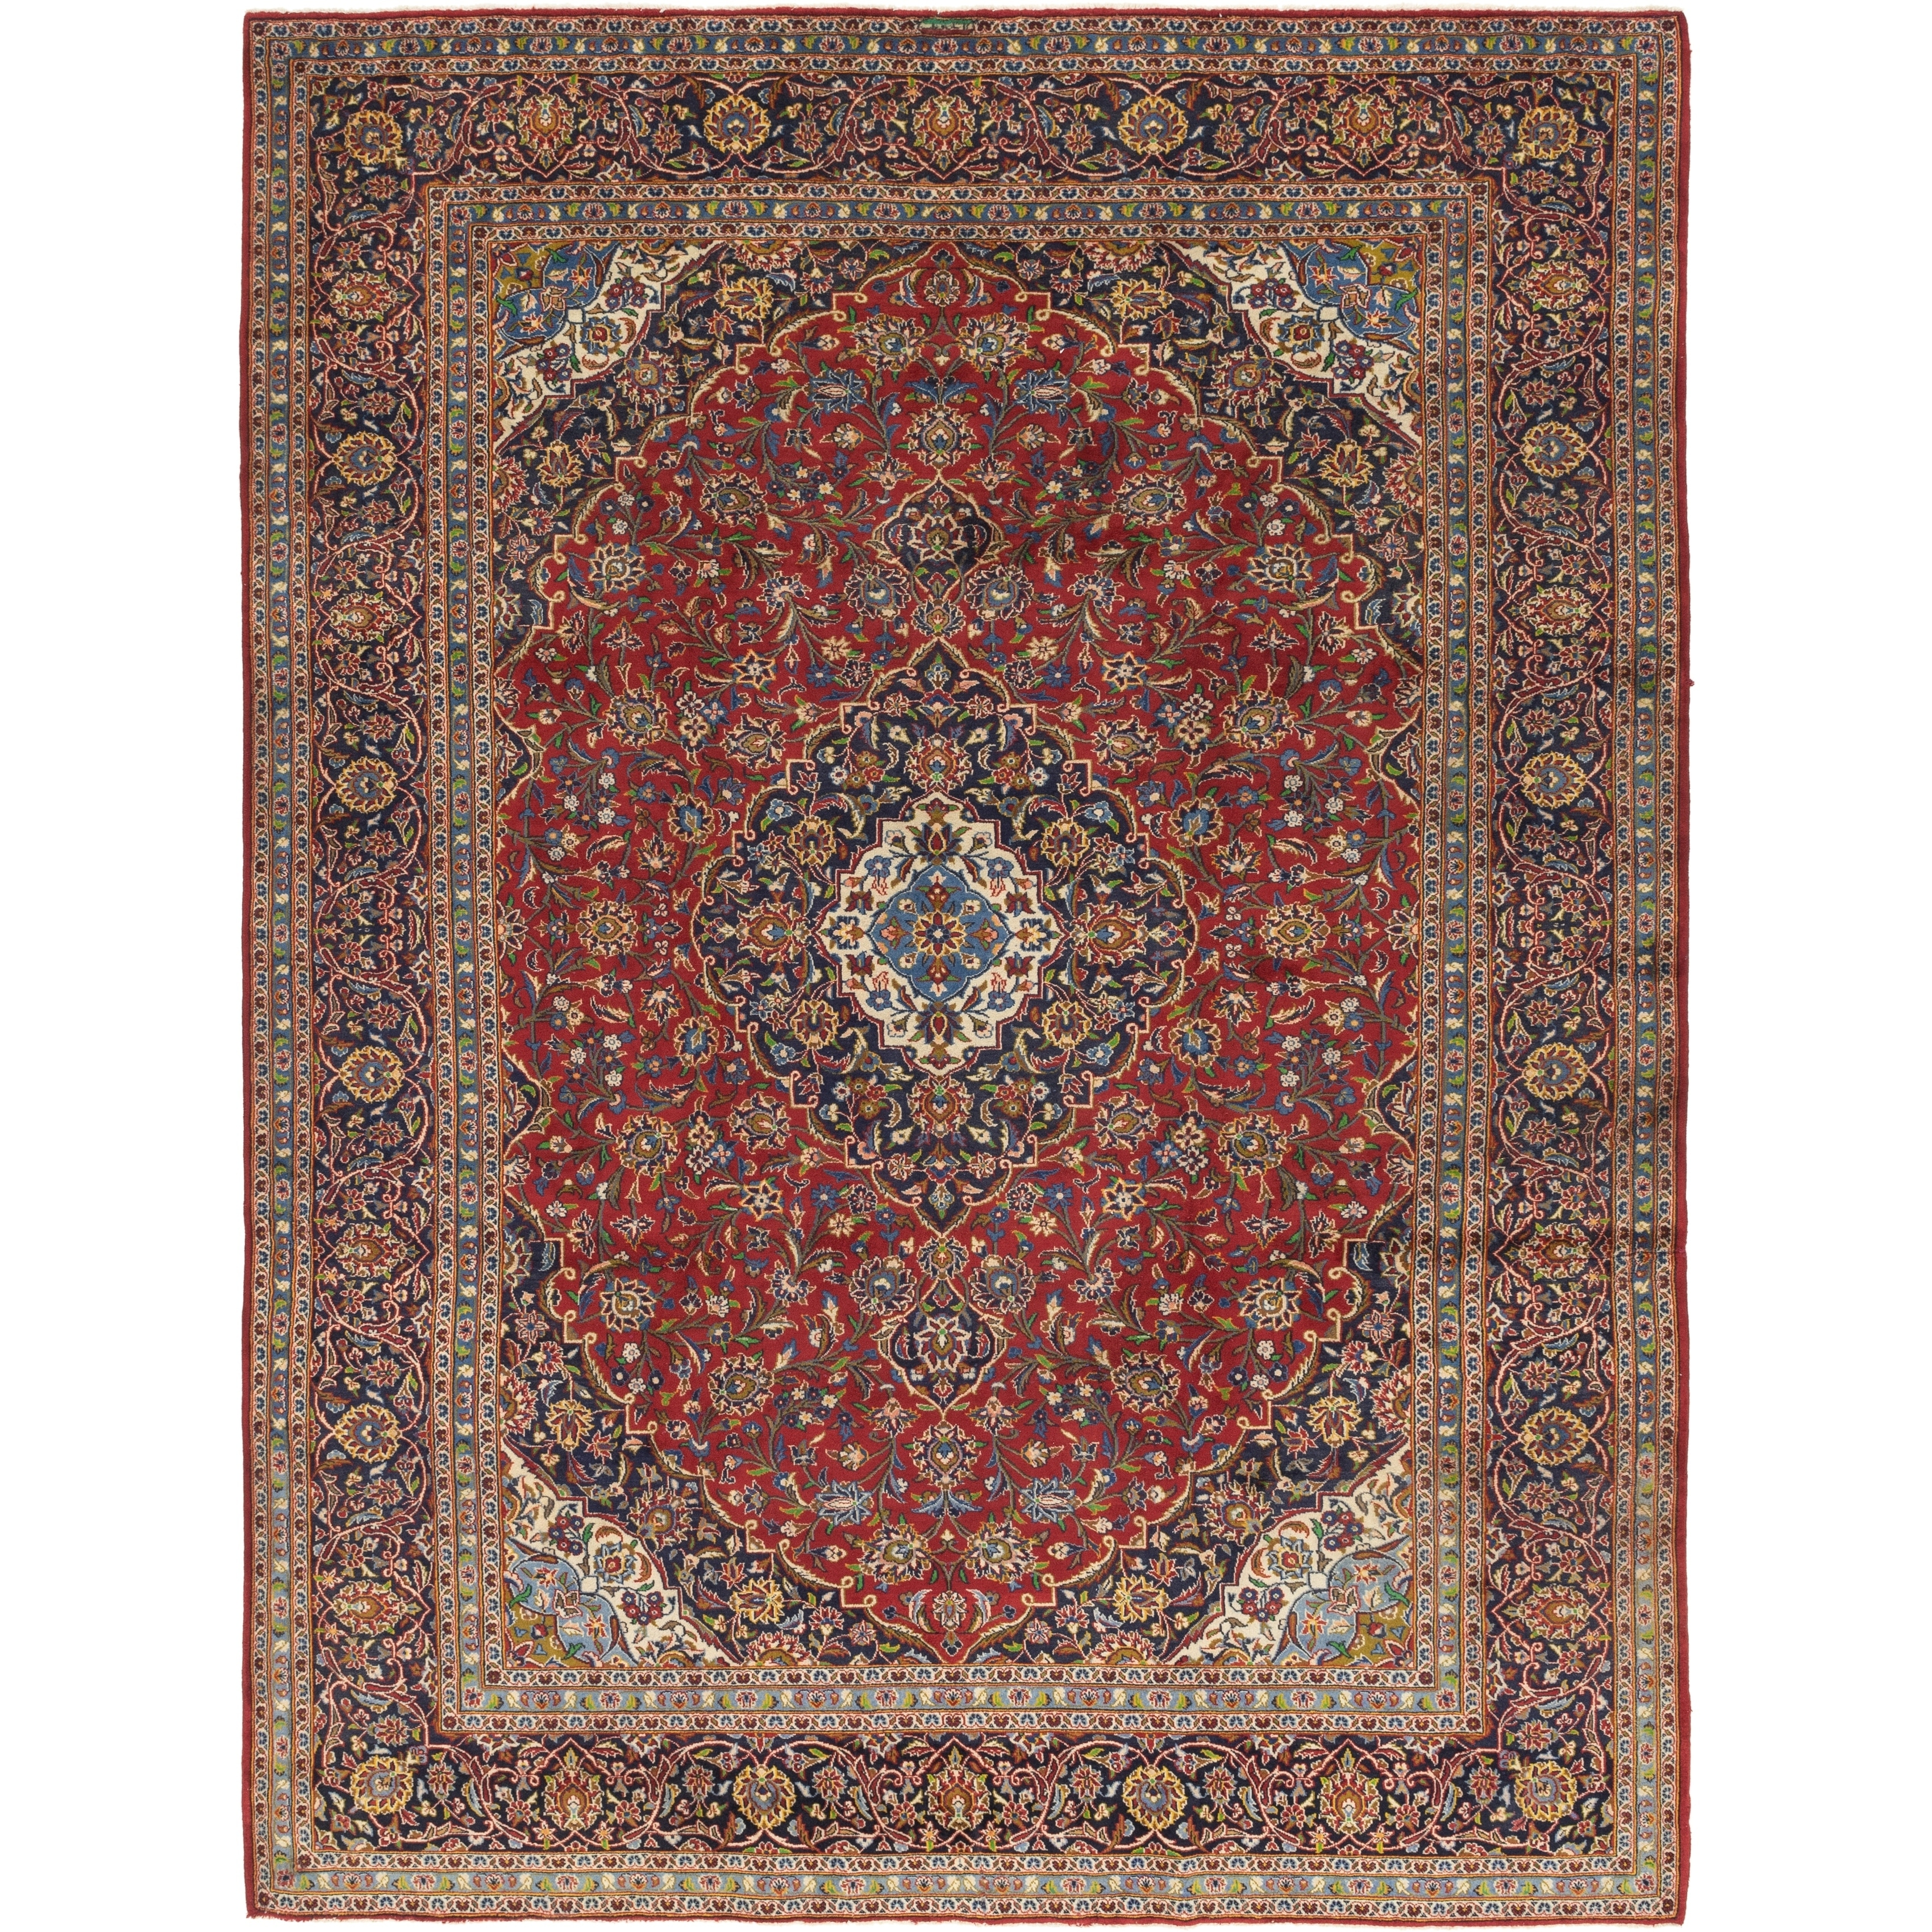 Hand Knotted Kashan Wool Area Rug - 9 10 x 13 (Red - 9 10 x 13)